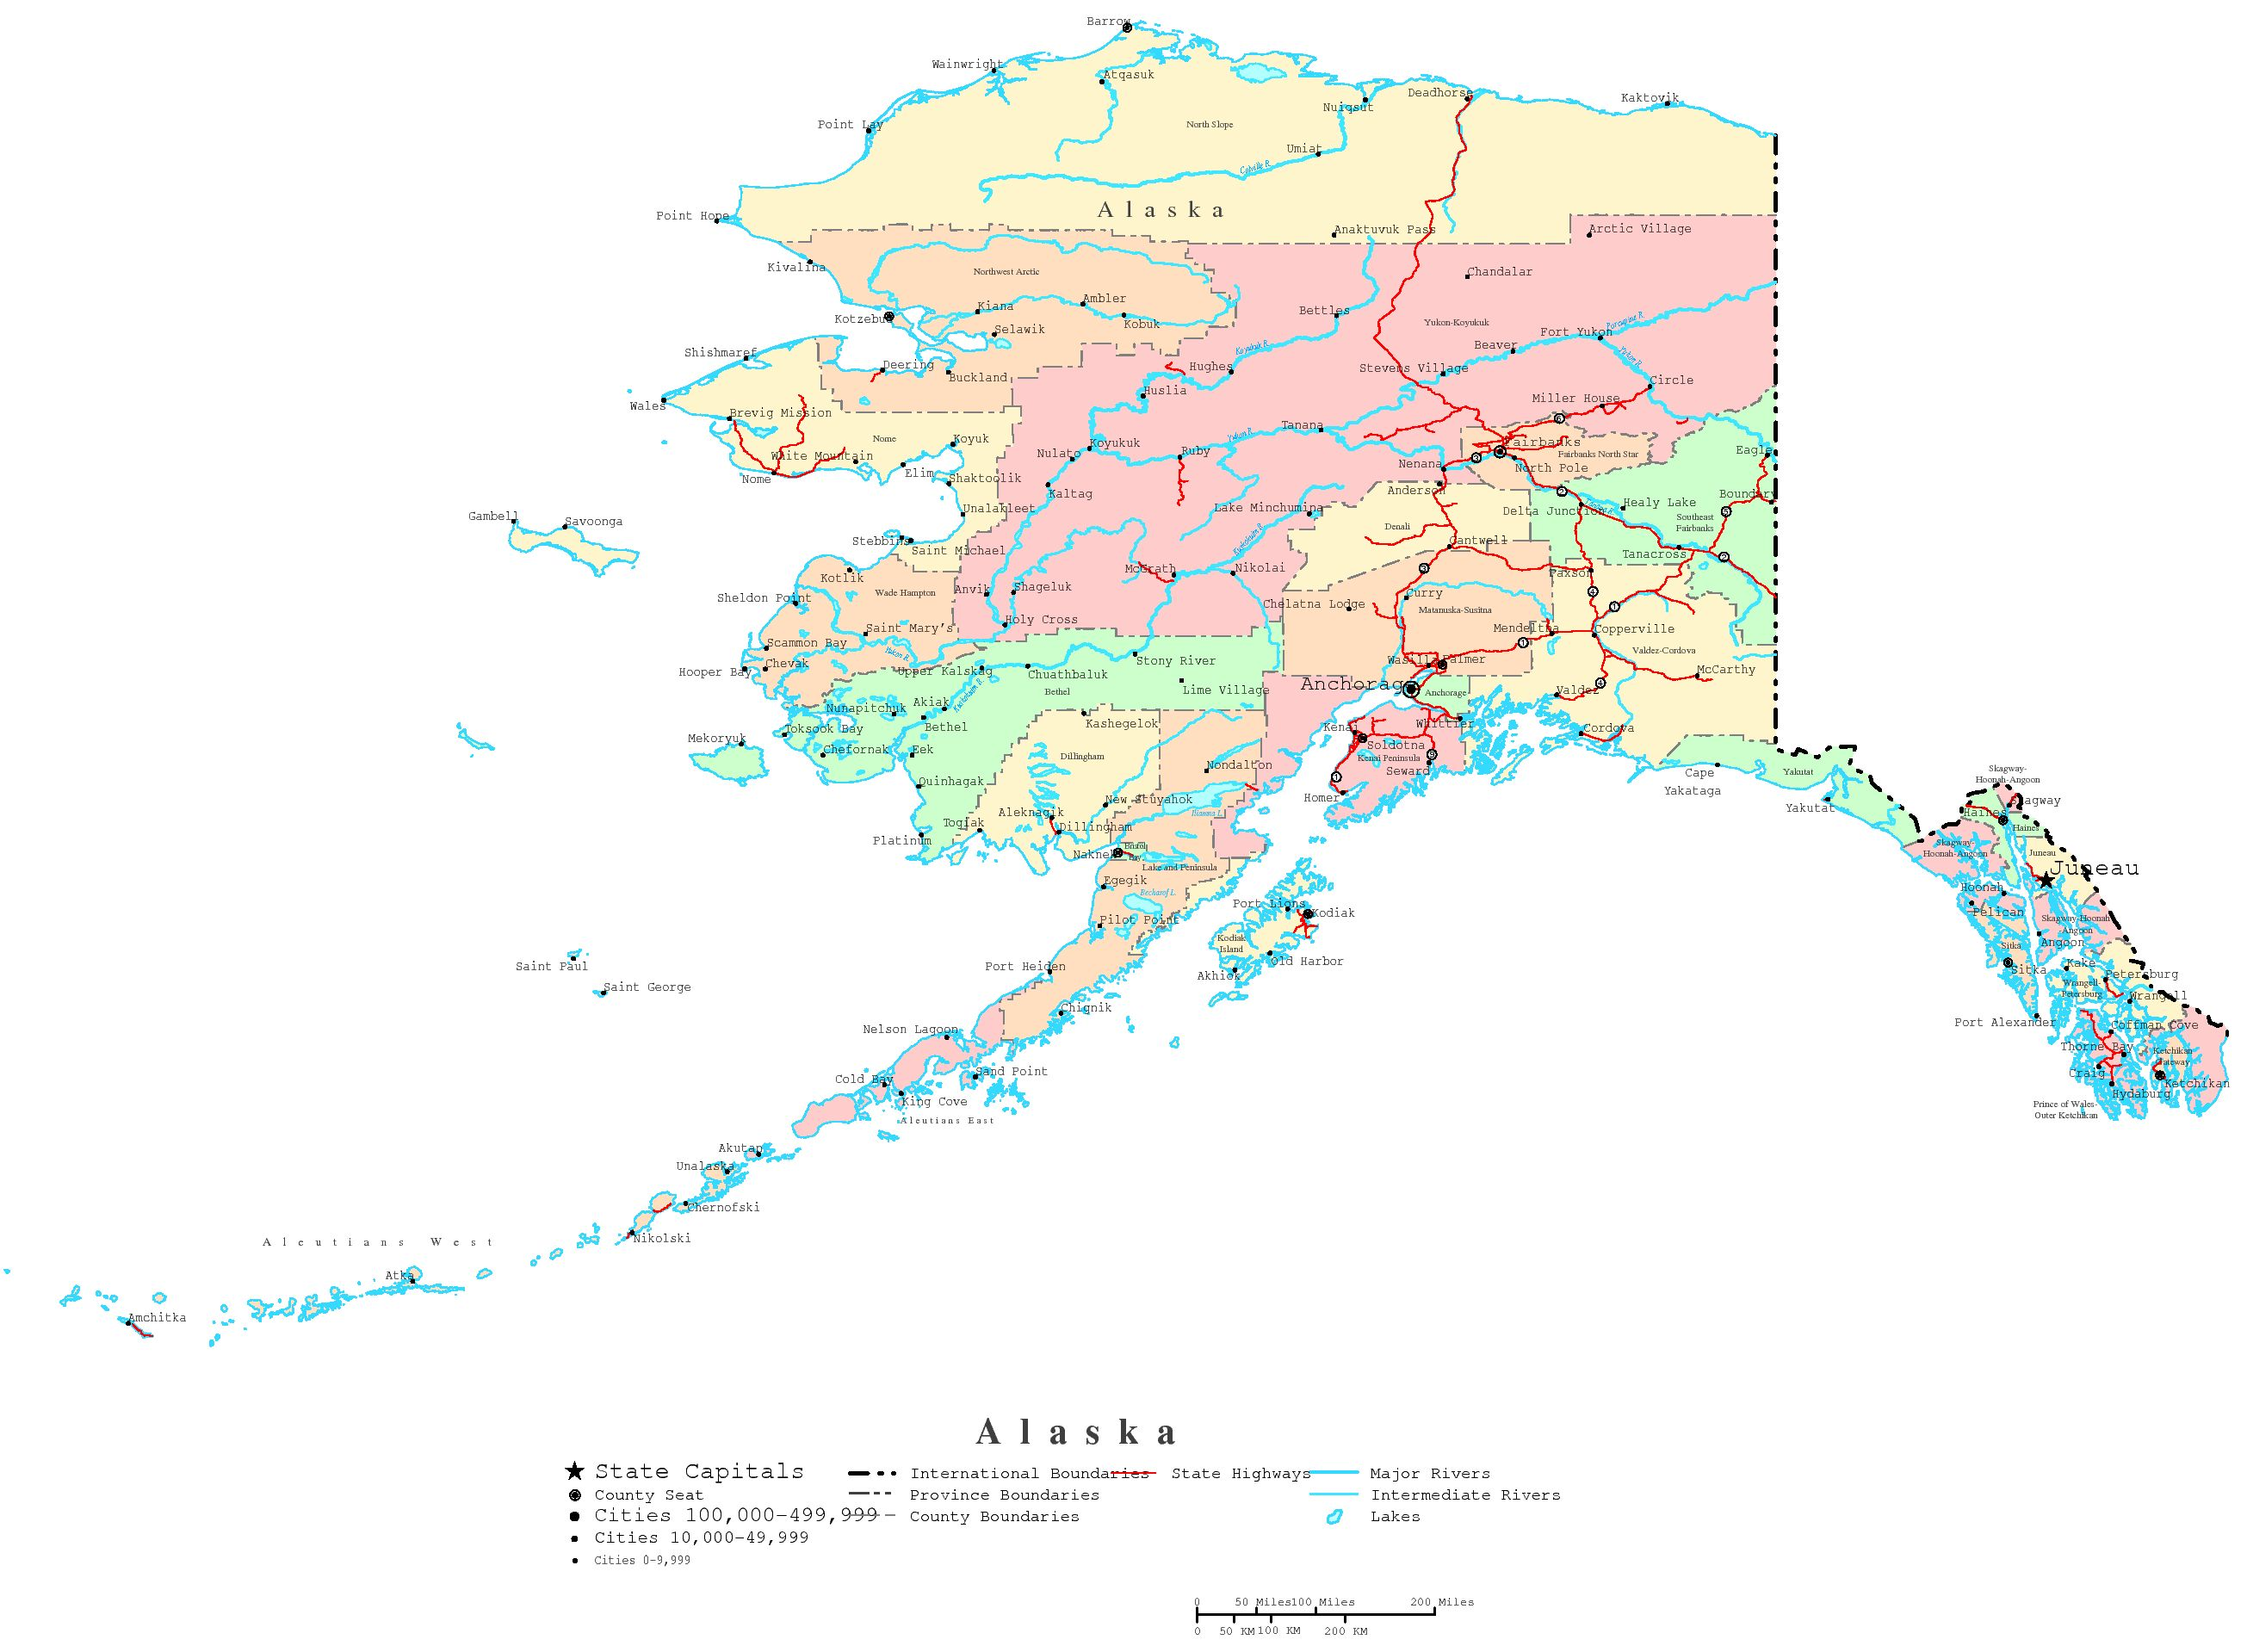 image regarding Printable Maps of Alaska called Alaska Printable Map